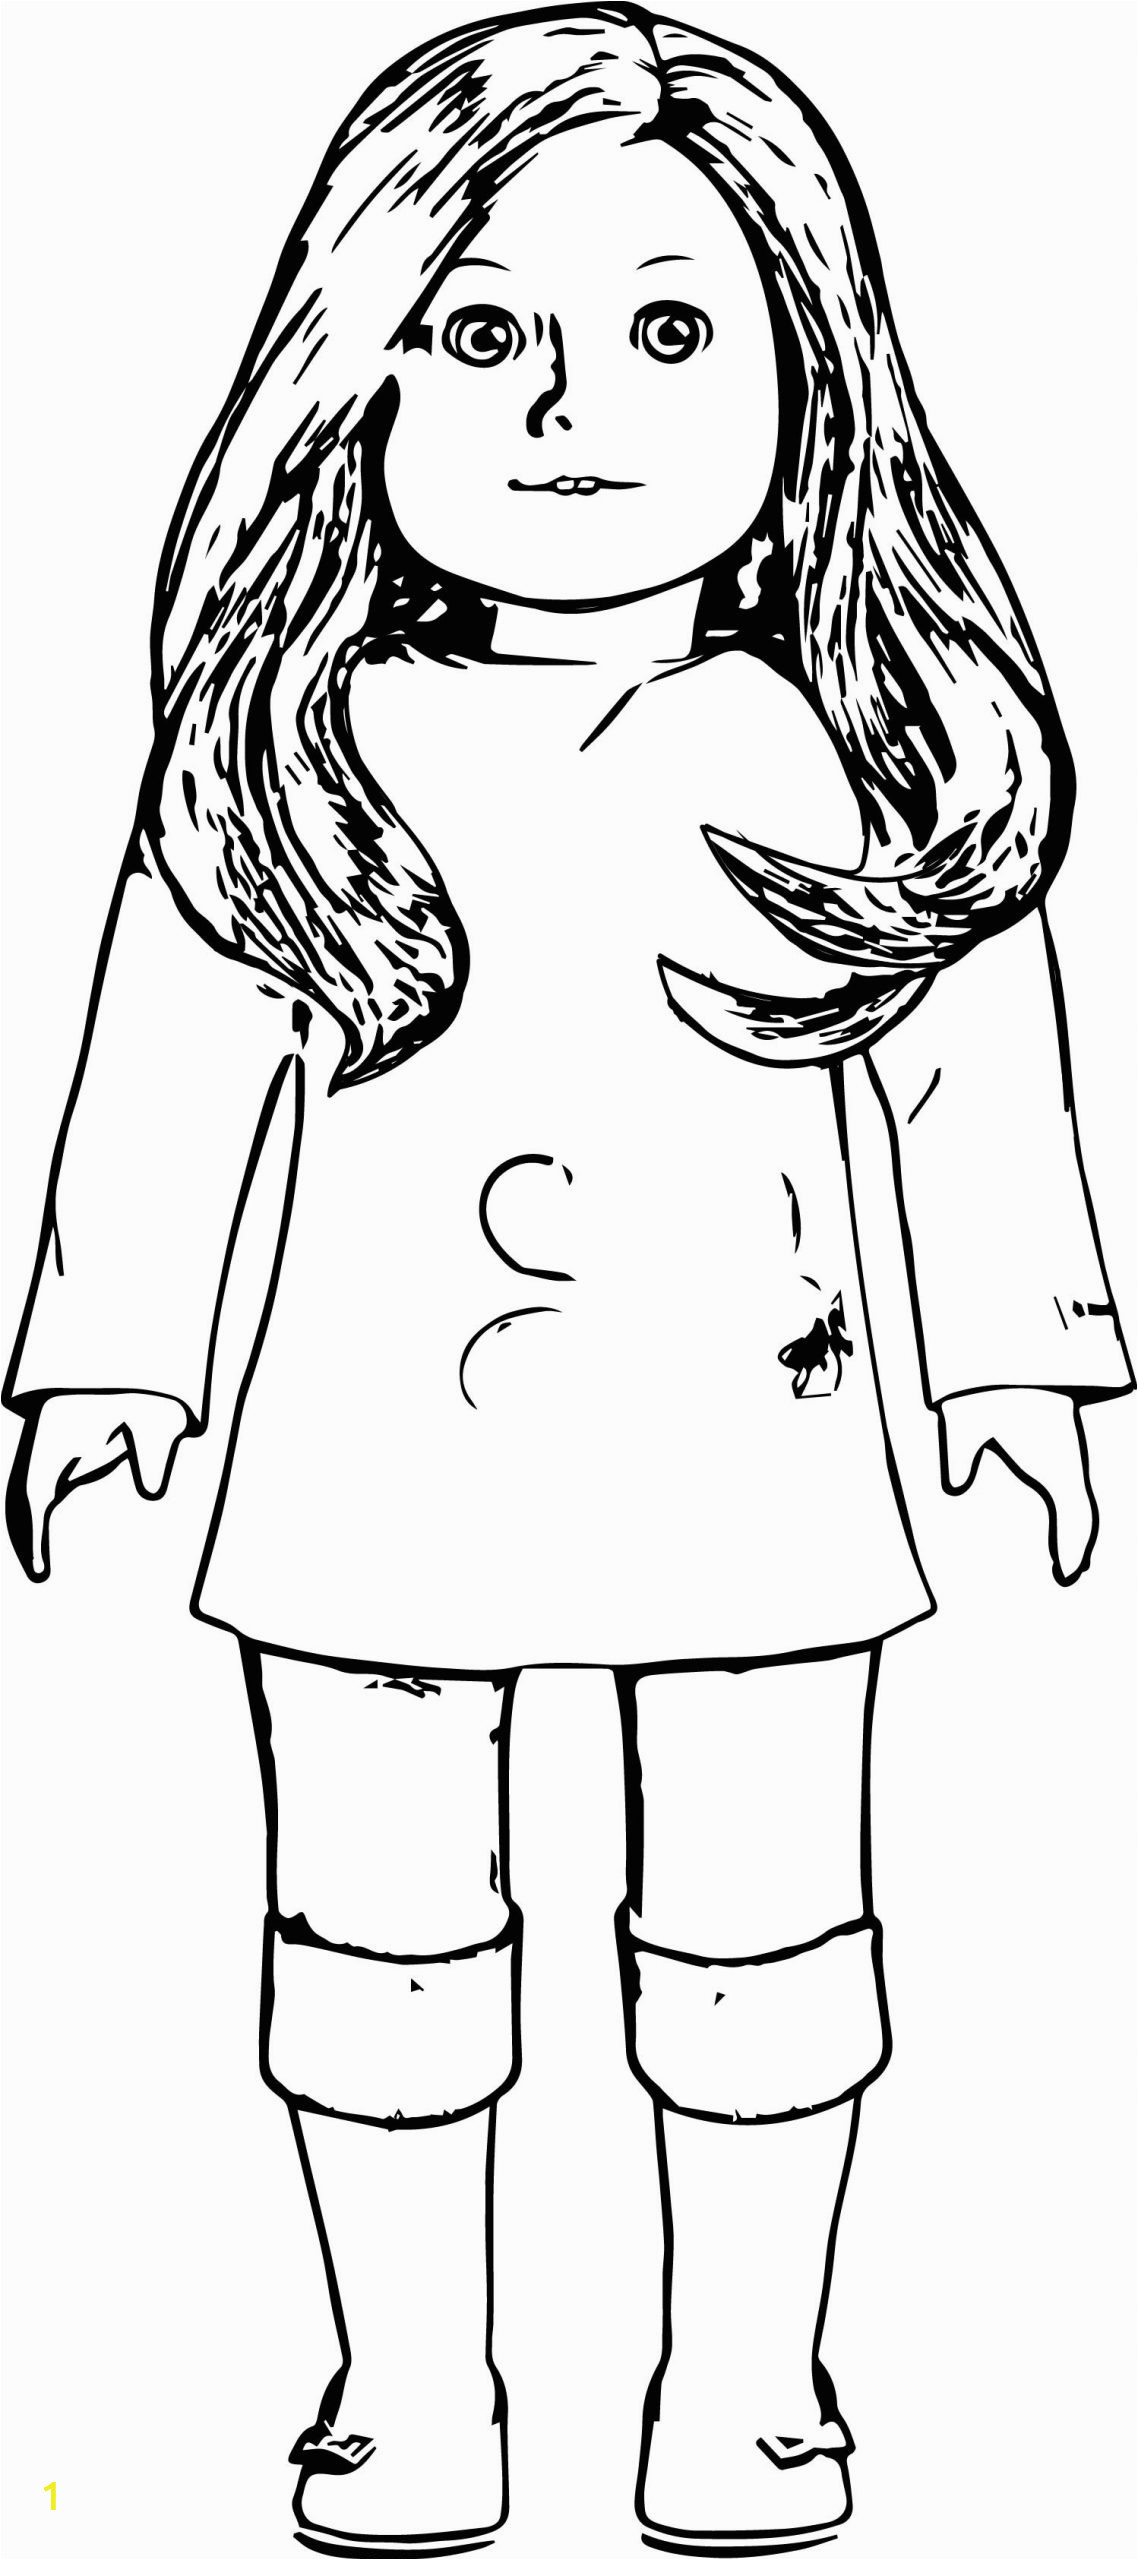 American Girl Doll Coloring Pages to Print American Girl Doll Coloring Pages to Print